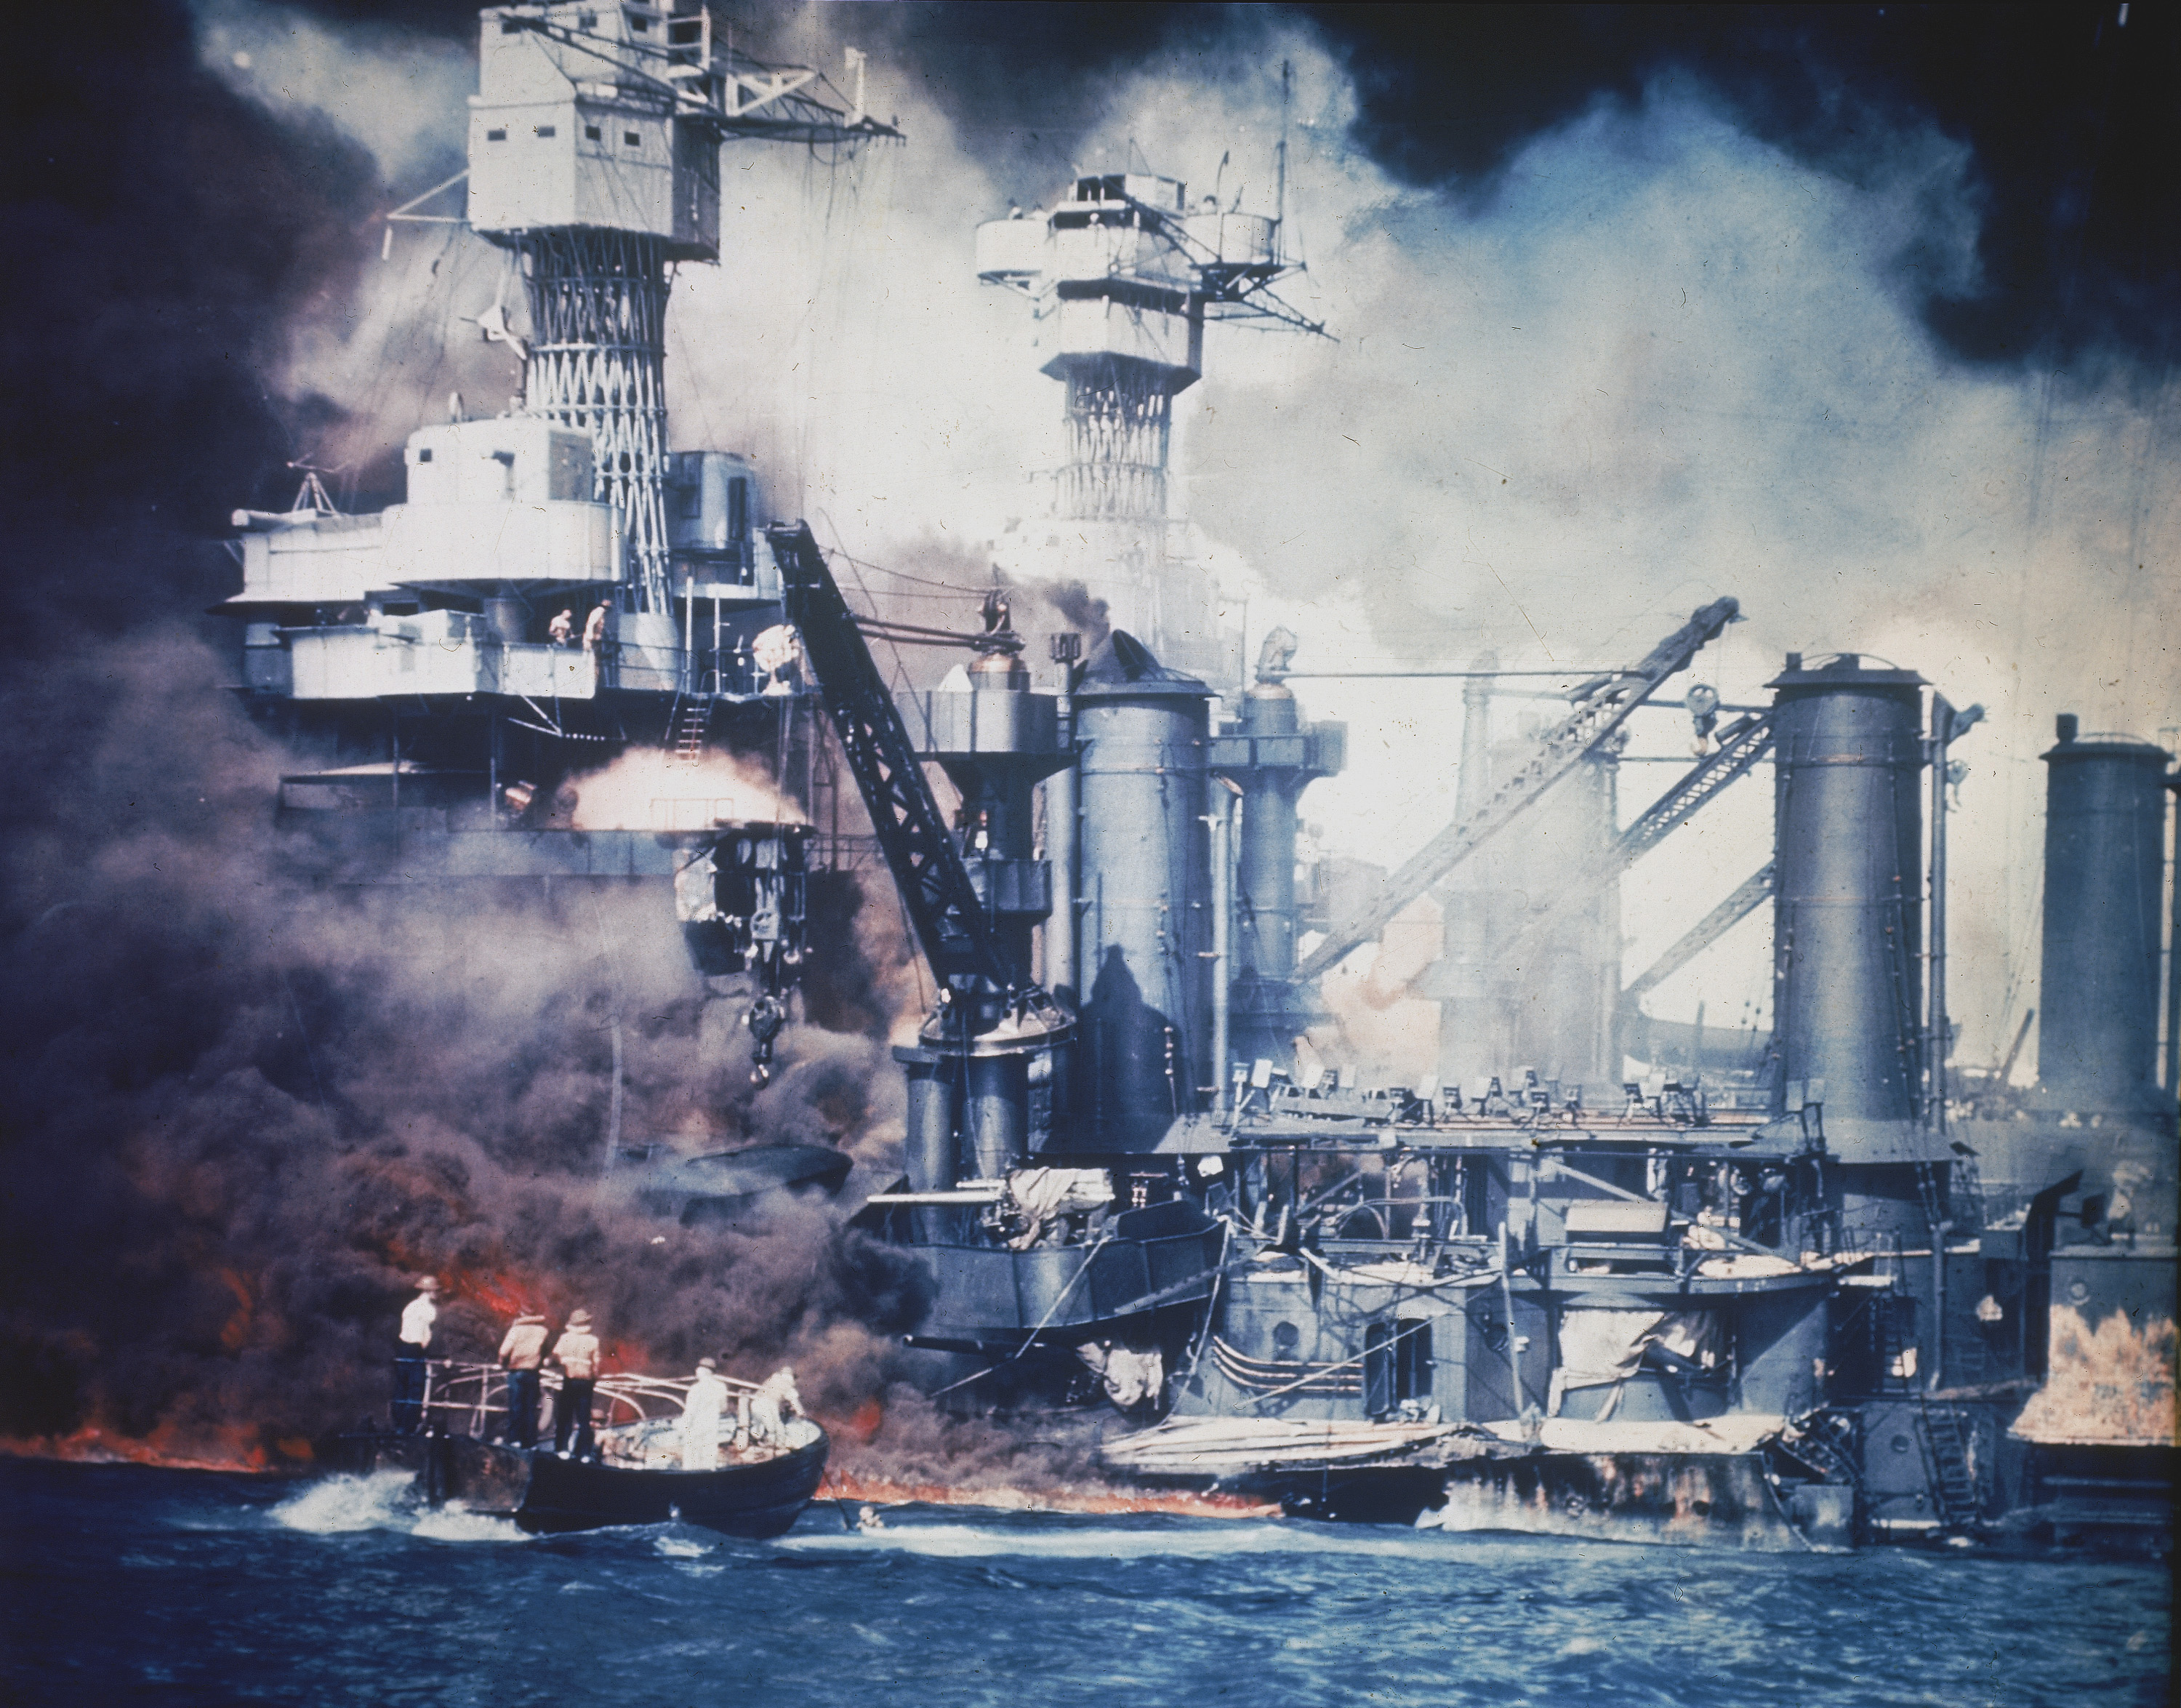 A small boat rescues a USS West Virginia crew member from the water after the Japanese bombing of Pearl Harbor, Hawaii on Dec. 7, 1941 during World War II. Two men can be seen on the superstructure, upper center. The mast of the USS Tennessee is beyond the burning West Virginia. (AP Photo)